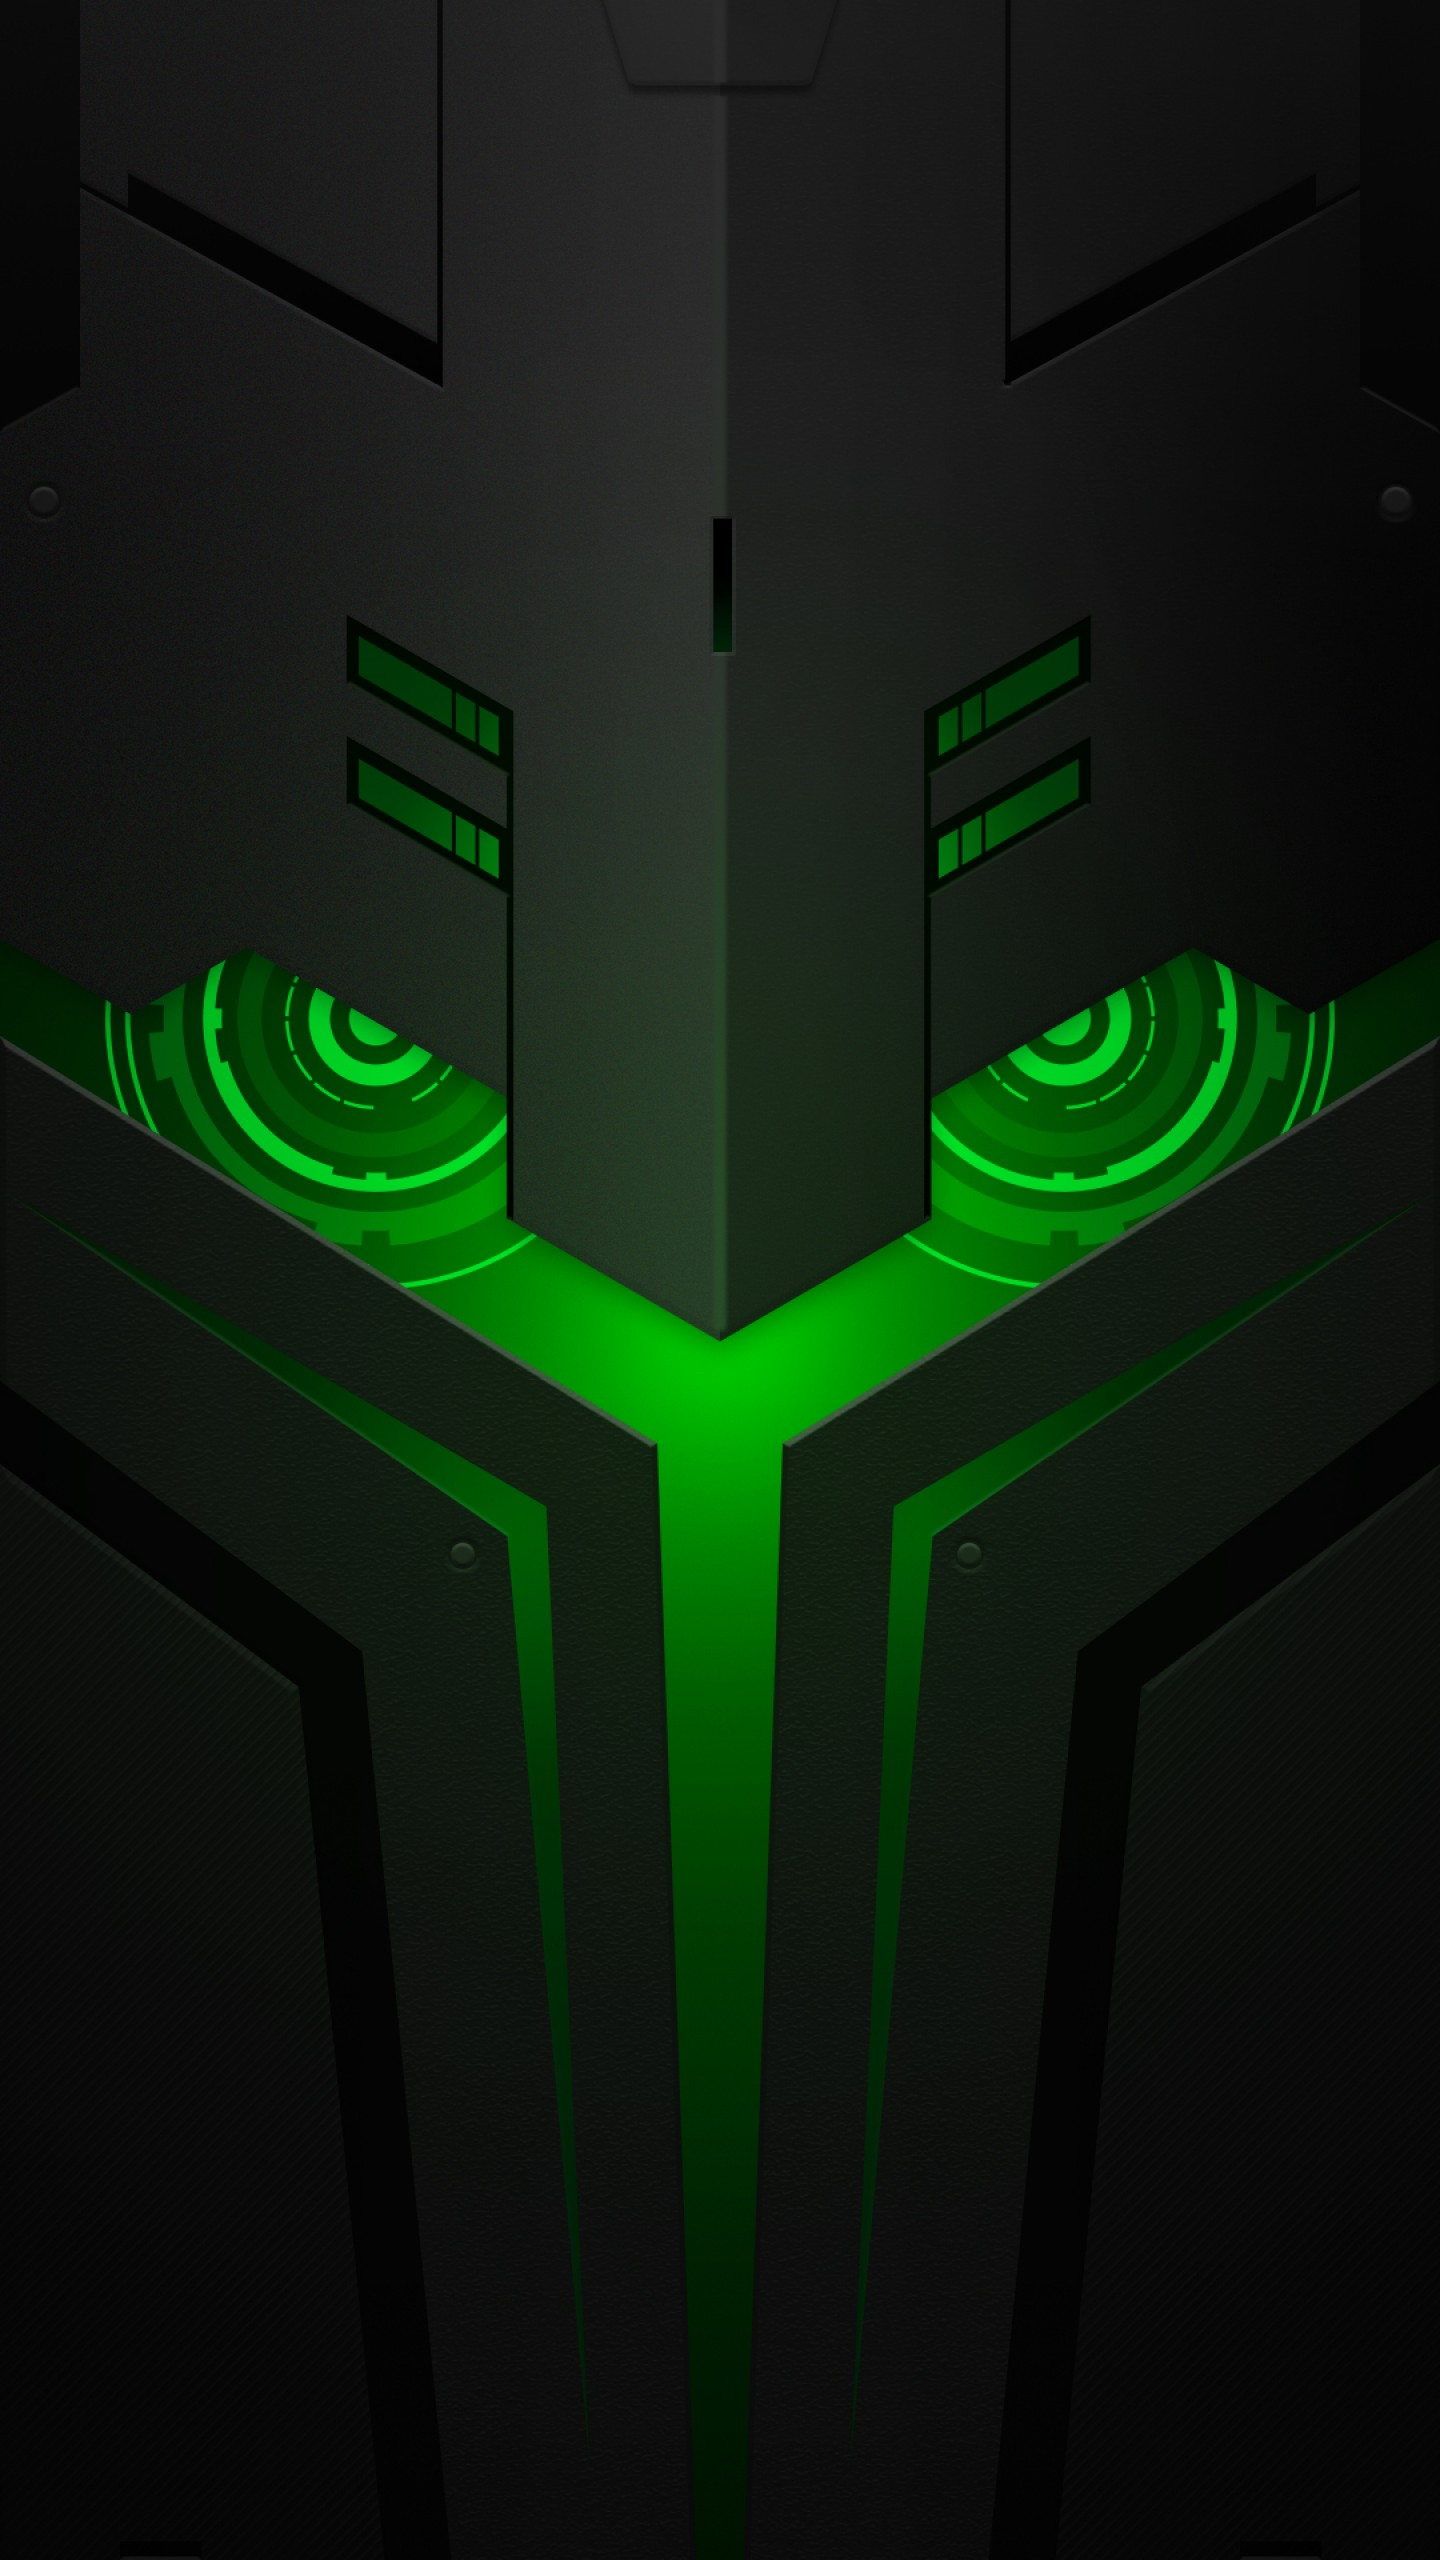 Wallpaper Xiaomi Black Shark Helo Abstract Android 8 0 Hd Os 20888